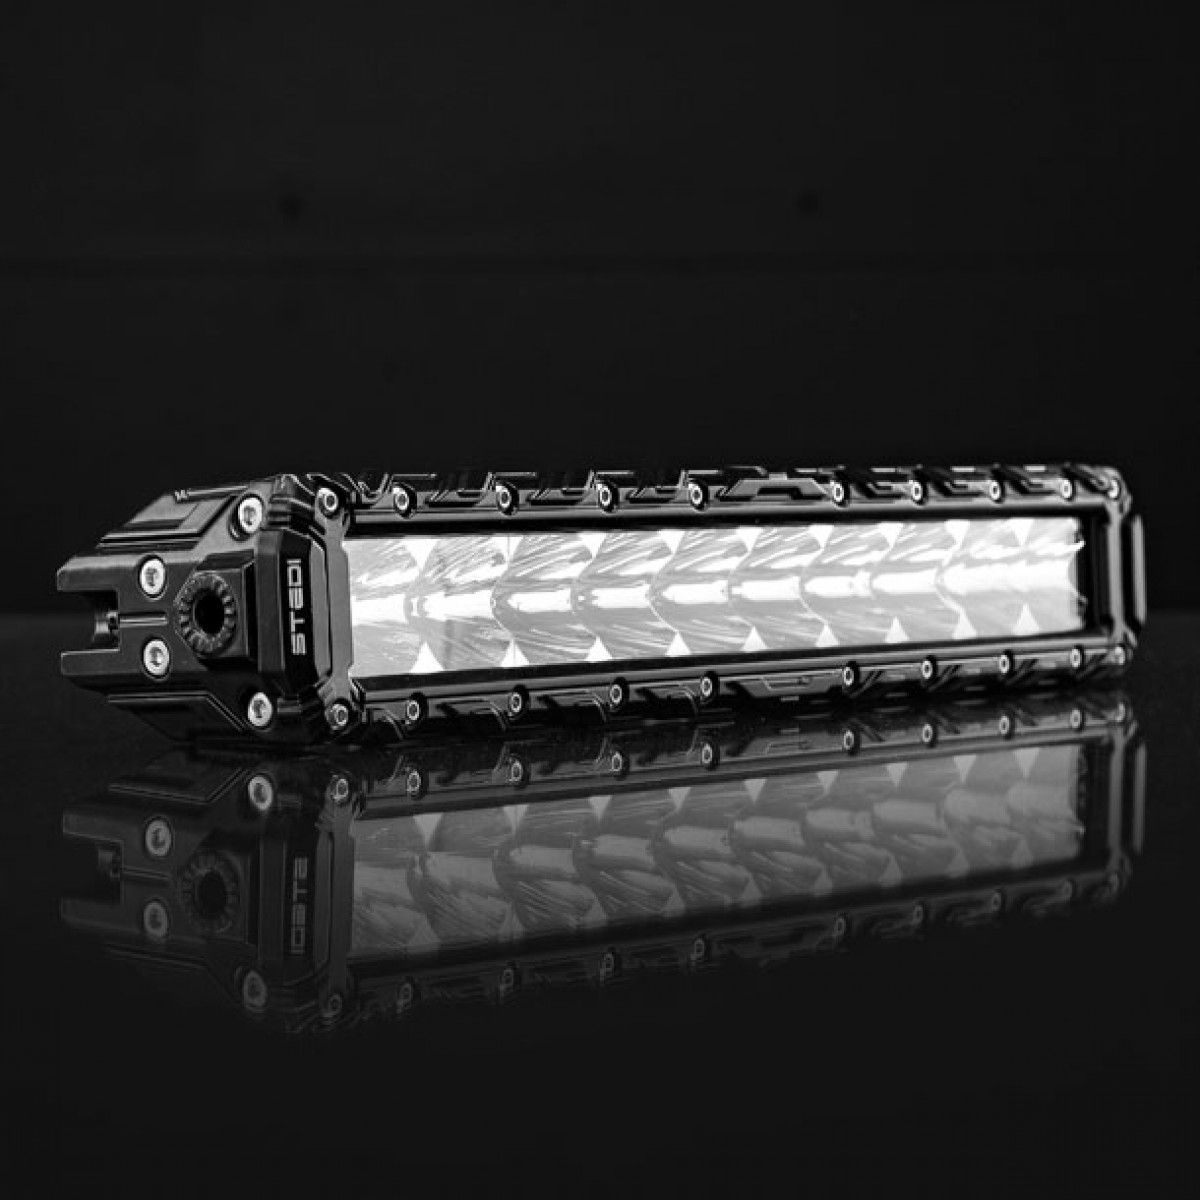 11 5 Inch Low Profile Slim Led Light Bar Led Lights Bar Lighting Led